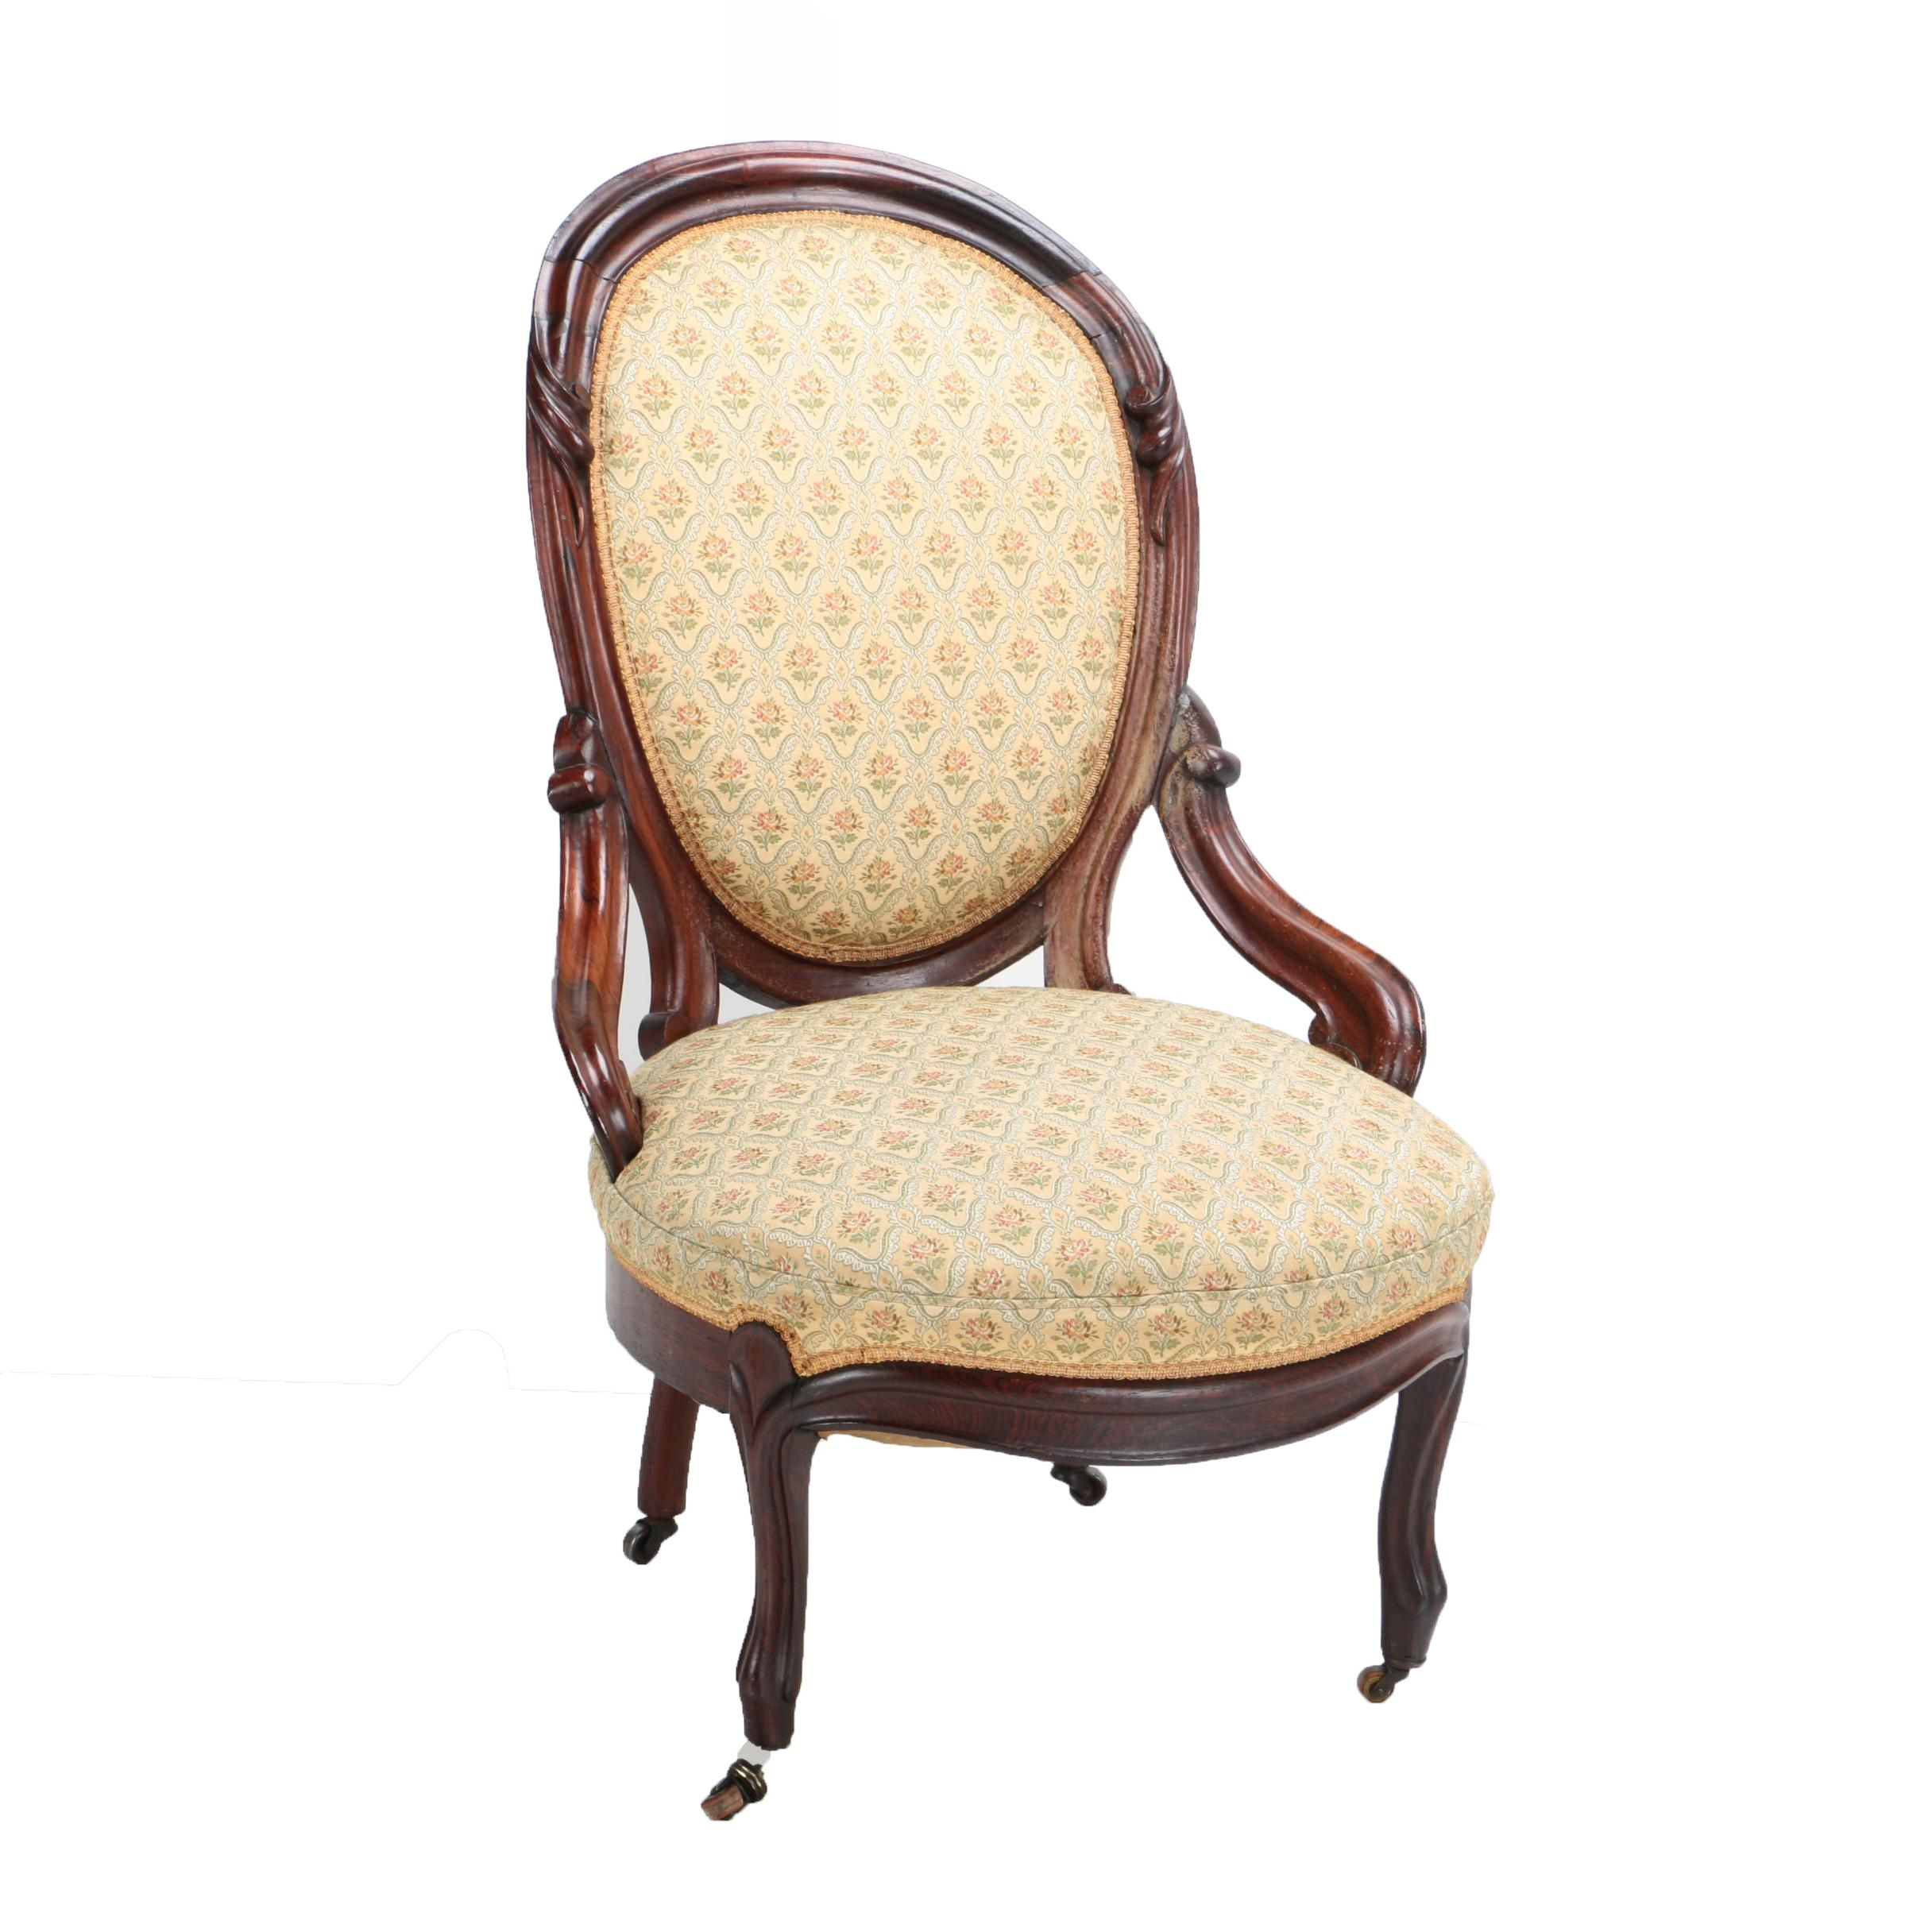 Vintage Queen Anne Style Upholstered Oval Back Side Chair